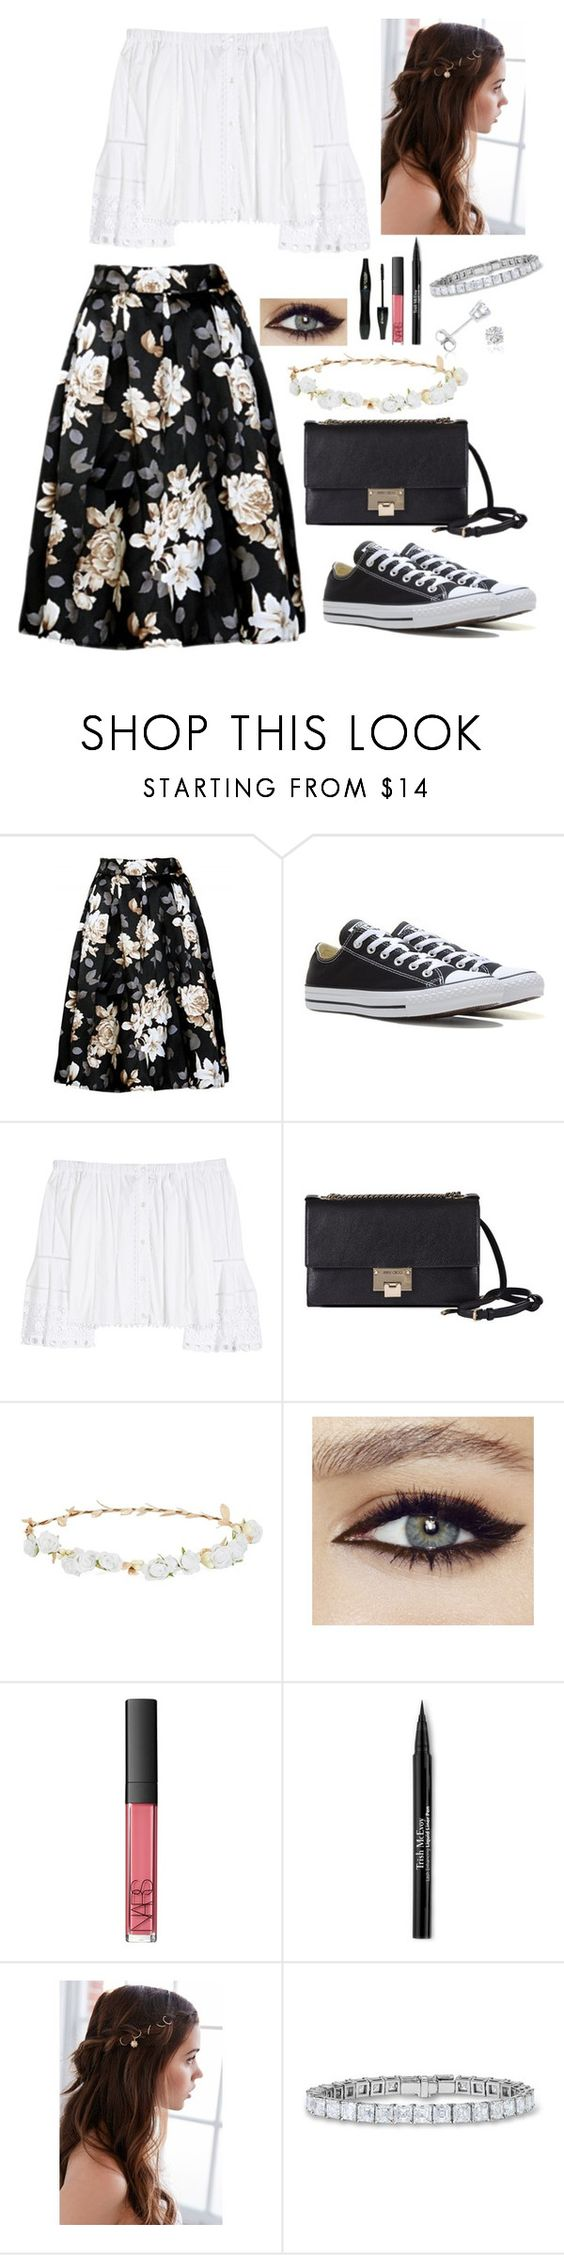 """""""Floral"""" by brooklynslayer ❤ liked on Polyvore featuring Converse, Carolina Herrera, Jimmy Choo, Design Lab, Lancôme, NARS Cosmetics, Trish McEvoy, REGALROSE, Amanda Rose Collection and Floralskirts"""